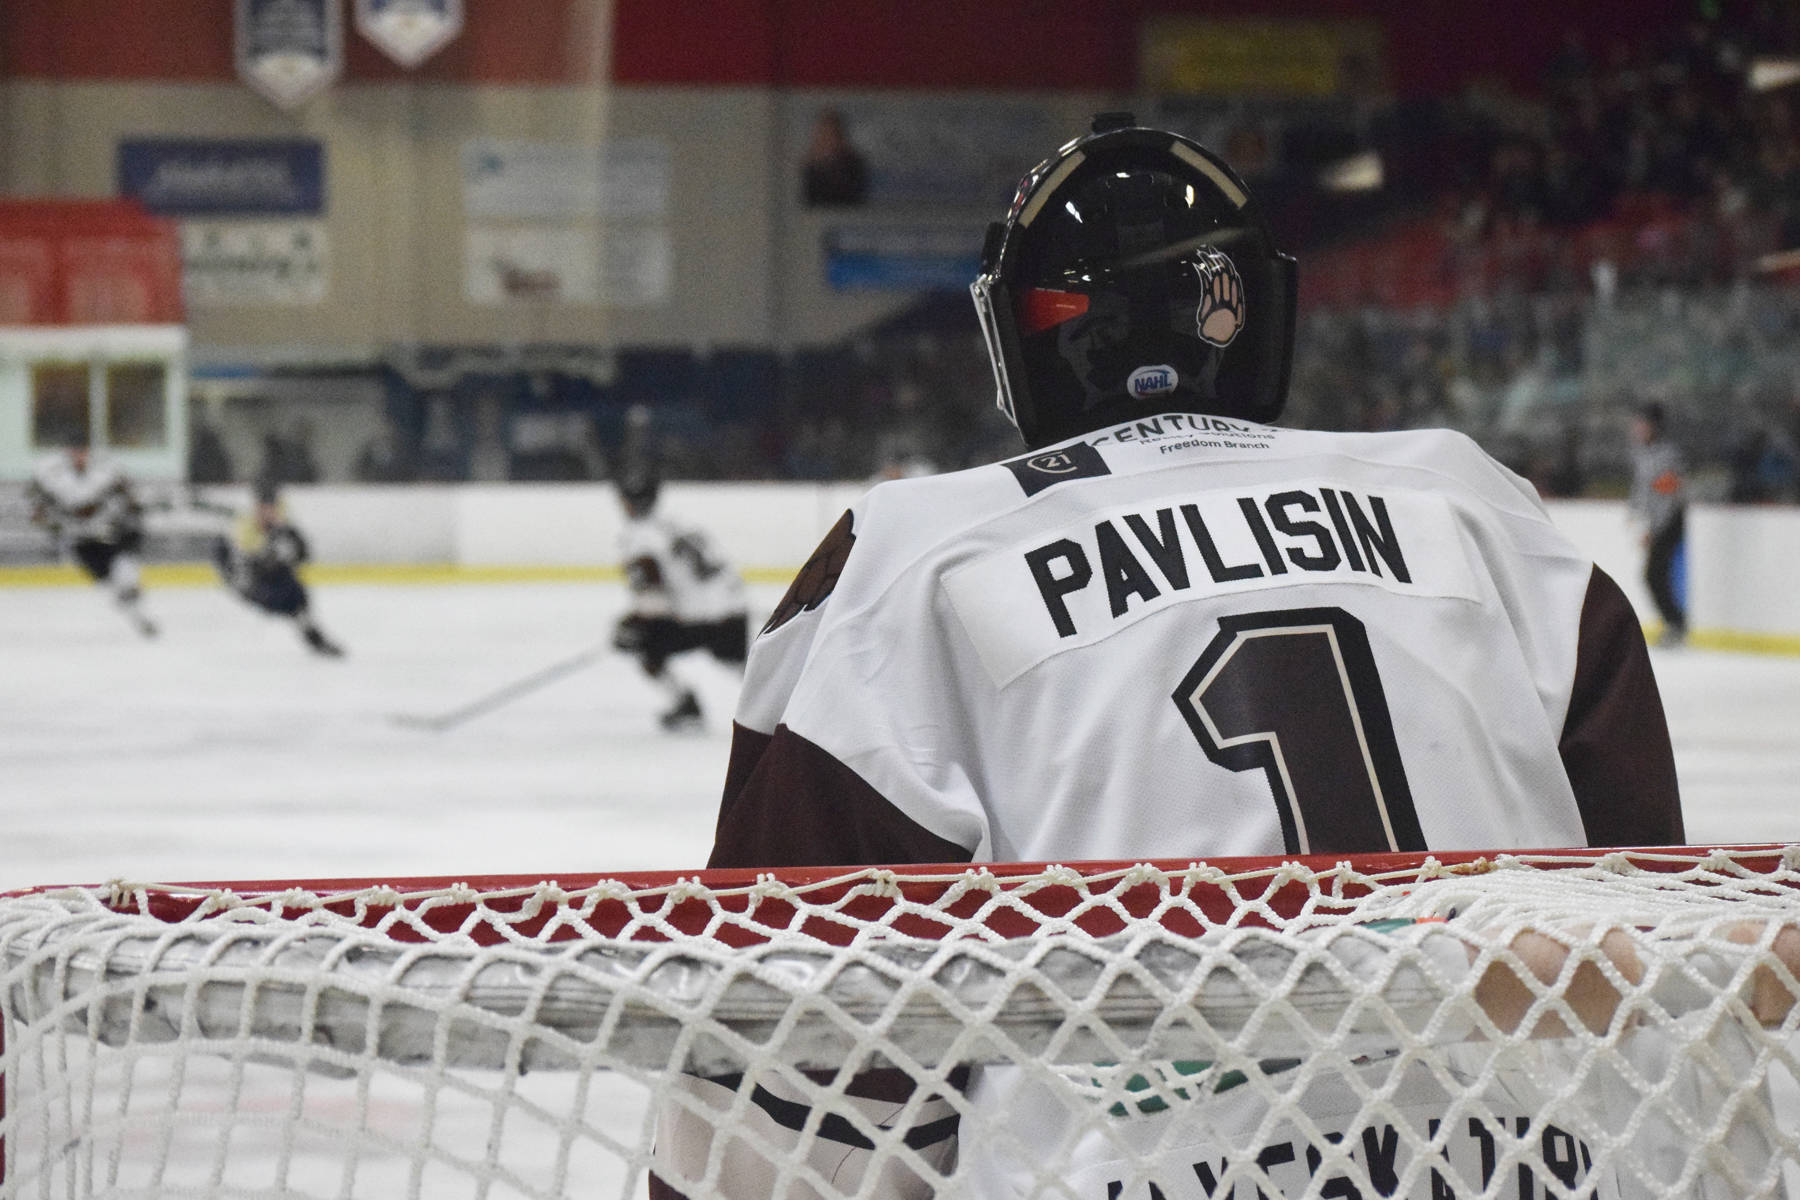 Kenai River Brown Bears goalkeeper Landon Pavlisin keeps an eye on the action during a game against the Janesville Jets, Saturday, Oct. 12, 2019, at the Soldotna Regional Sports Complex in Soldotna, Alaska. (Photo by Joey Klecka/Peninsula Clarion)